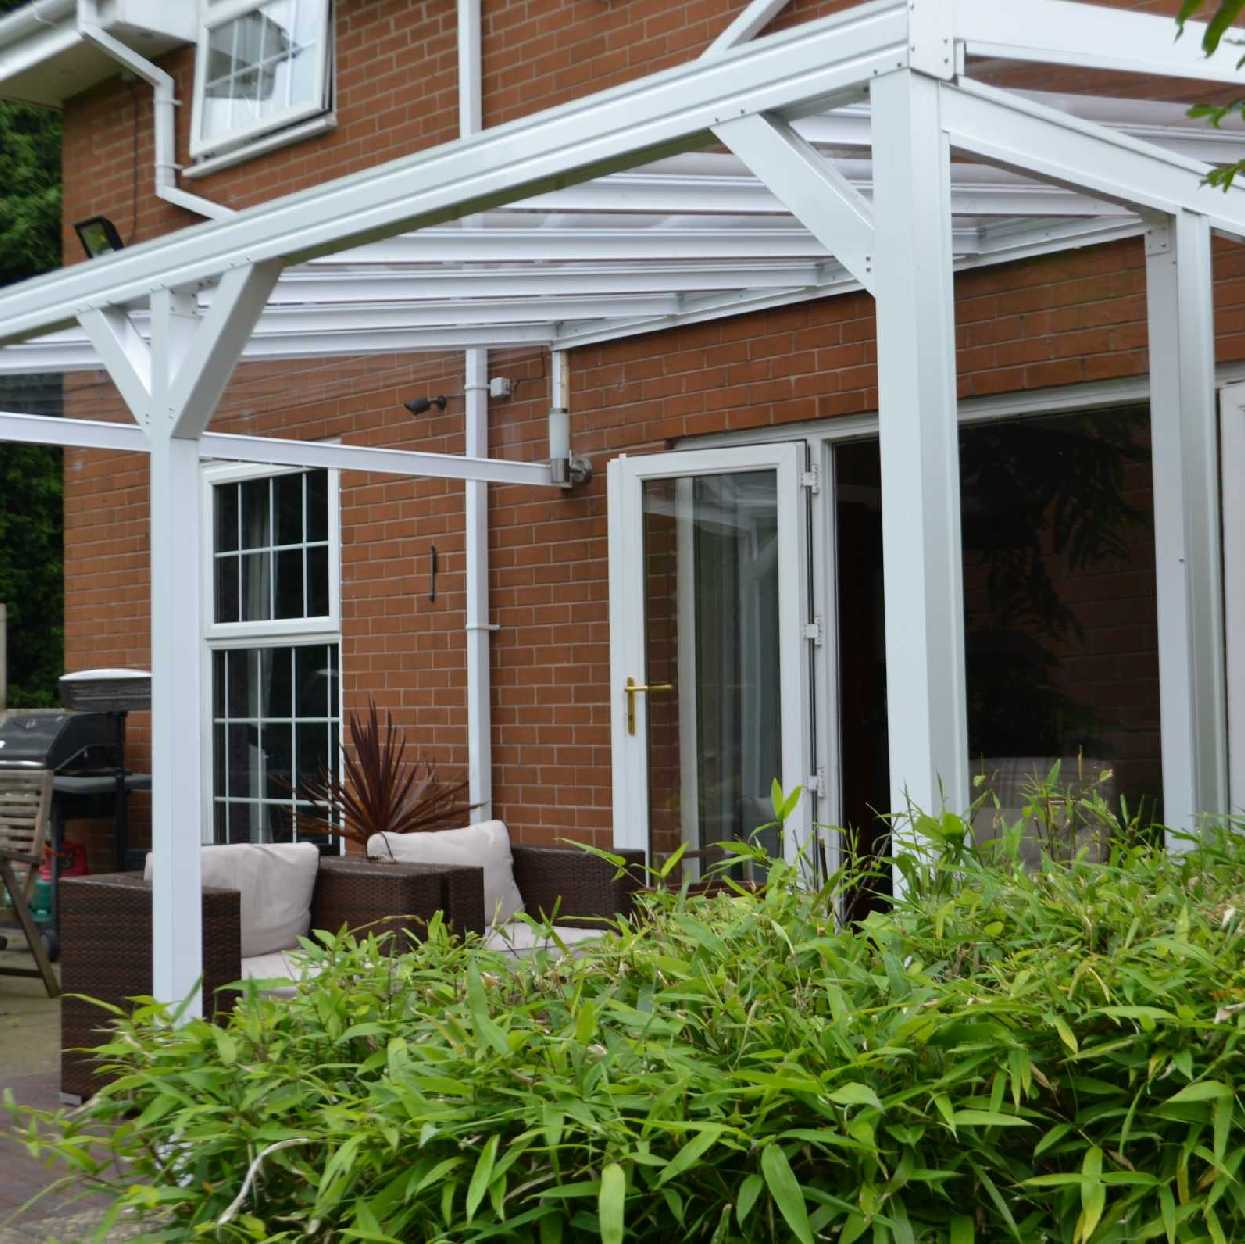 Omega Smart White Lean-To Canopy with 6mm Glass Clear Plate Polycarbonate Glazing - 4.9m (W) x 1.5m (P), (3) Supporting Posts from Omega Build